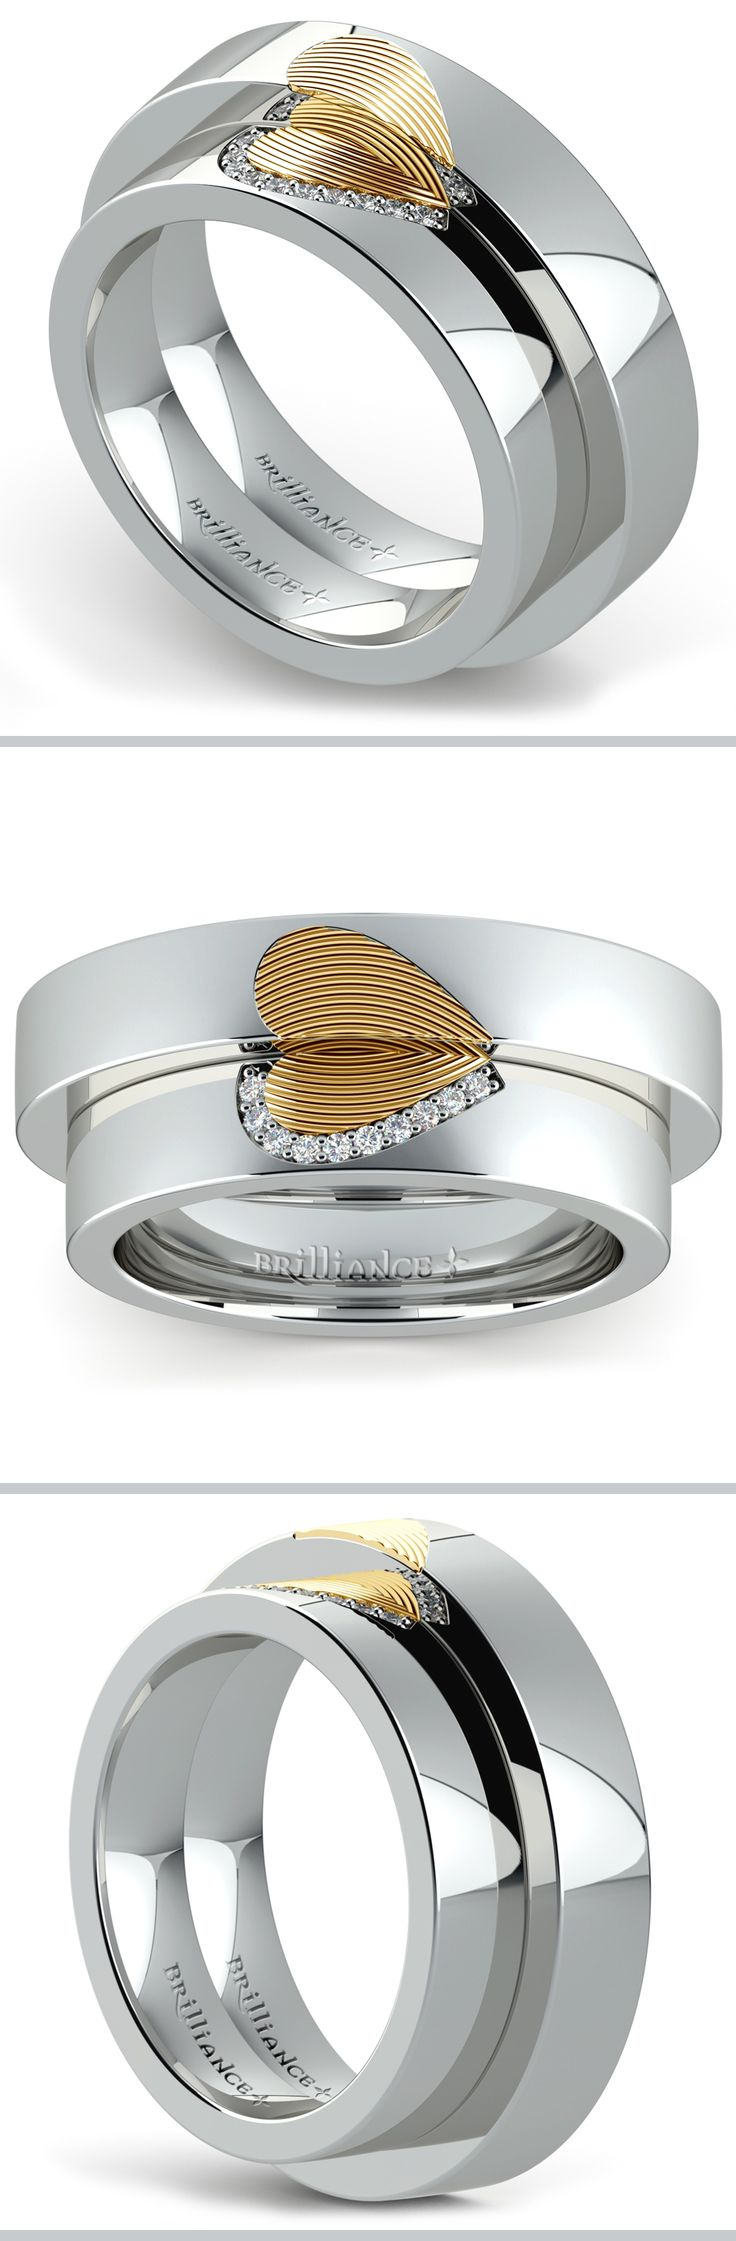 fingerprint wedding bands fingerprint wedding band Matching Heart Fingerprint Inlay Wedding Ring Set in Platinum and Yellow Gold